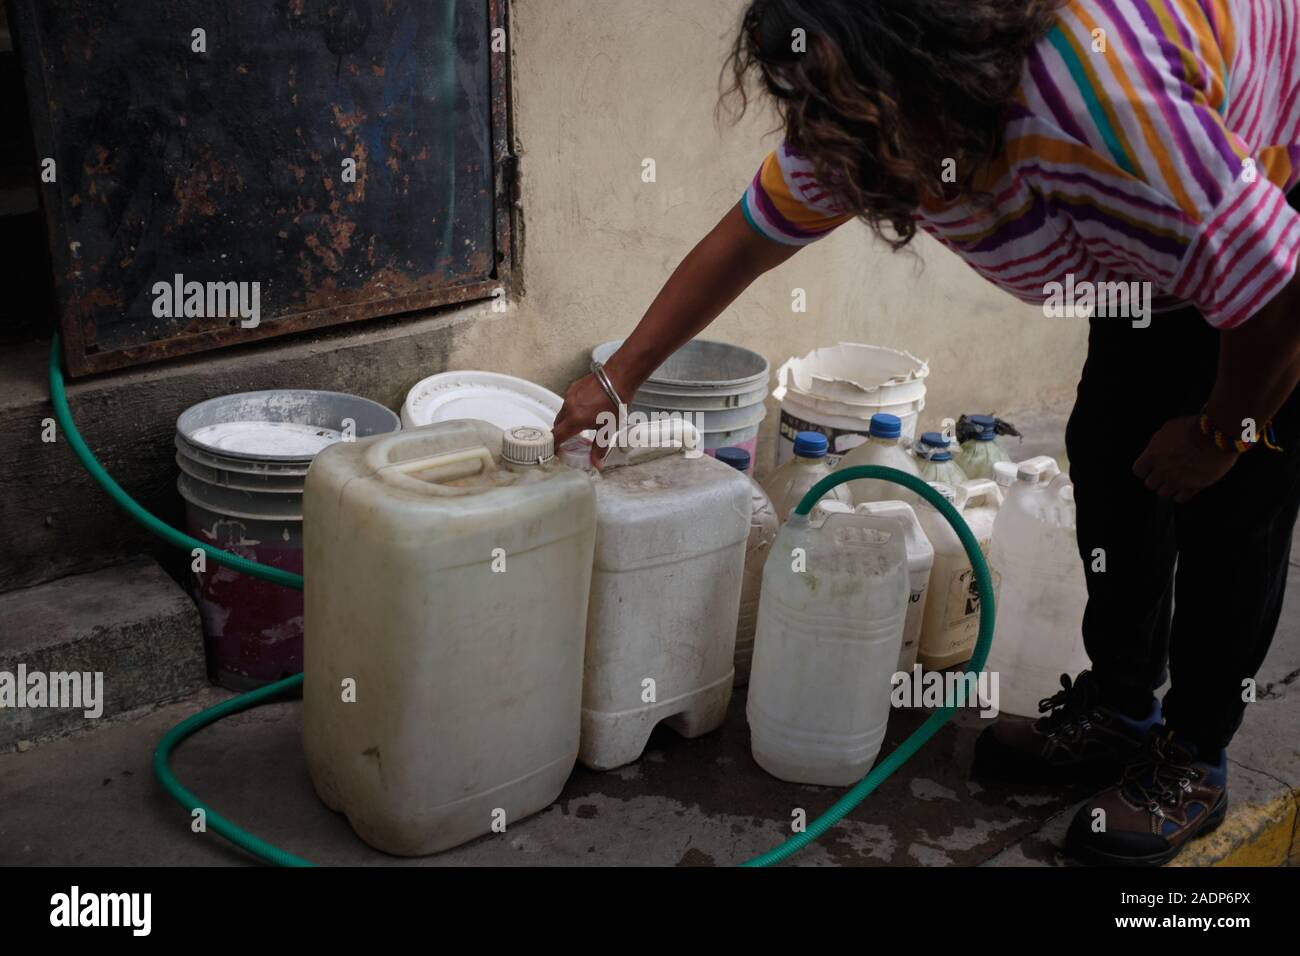 Caracas, Miranda, Venezuela. 29th Nov, 2019. Aura filling the water contaners with the water from Aura's sister's house.Aura Graciela Sarmiento, age 56, and her husband Jose Alberto Abreu, age 62, have not had running water at their house in 4 years. Aura works in a store selling office furniture, and Jose is a mechanic. They live in the neighborhood of Altos de Lidice in Caracas Venezuela. Altos de Lidice is a historic Chavista neighborhood. However, Aura is pro-Opposition, and has never supported the Chavez regime even though she has lived in this pro-Chavez/Maduro barrio her whole life Stock Photo